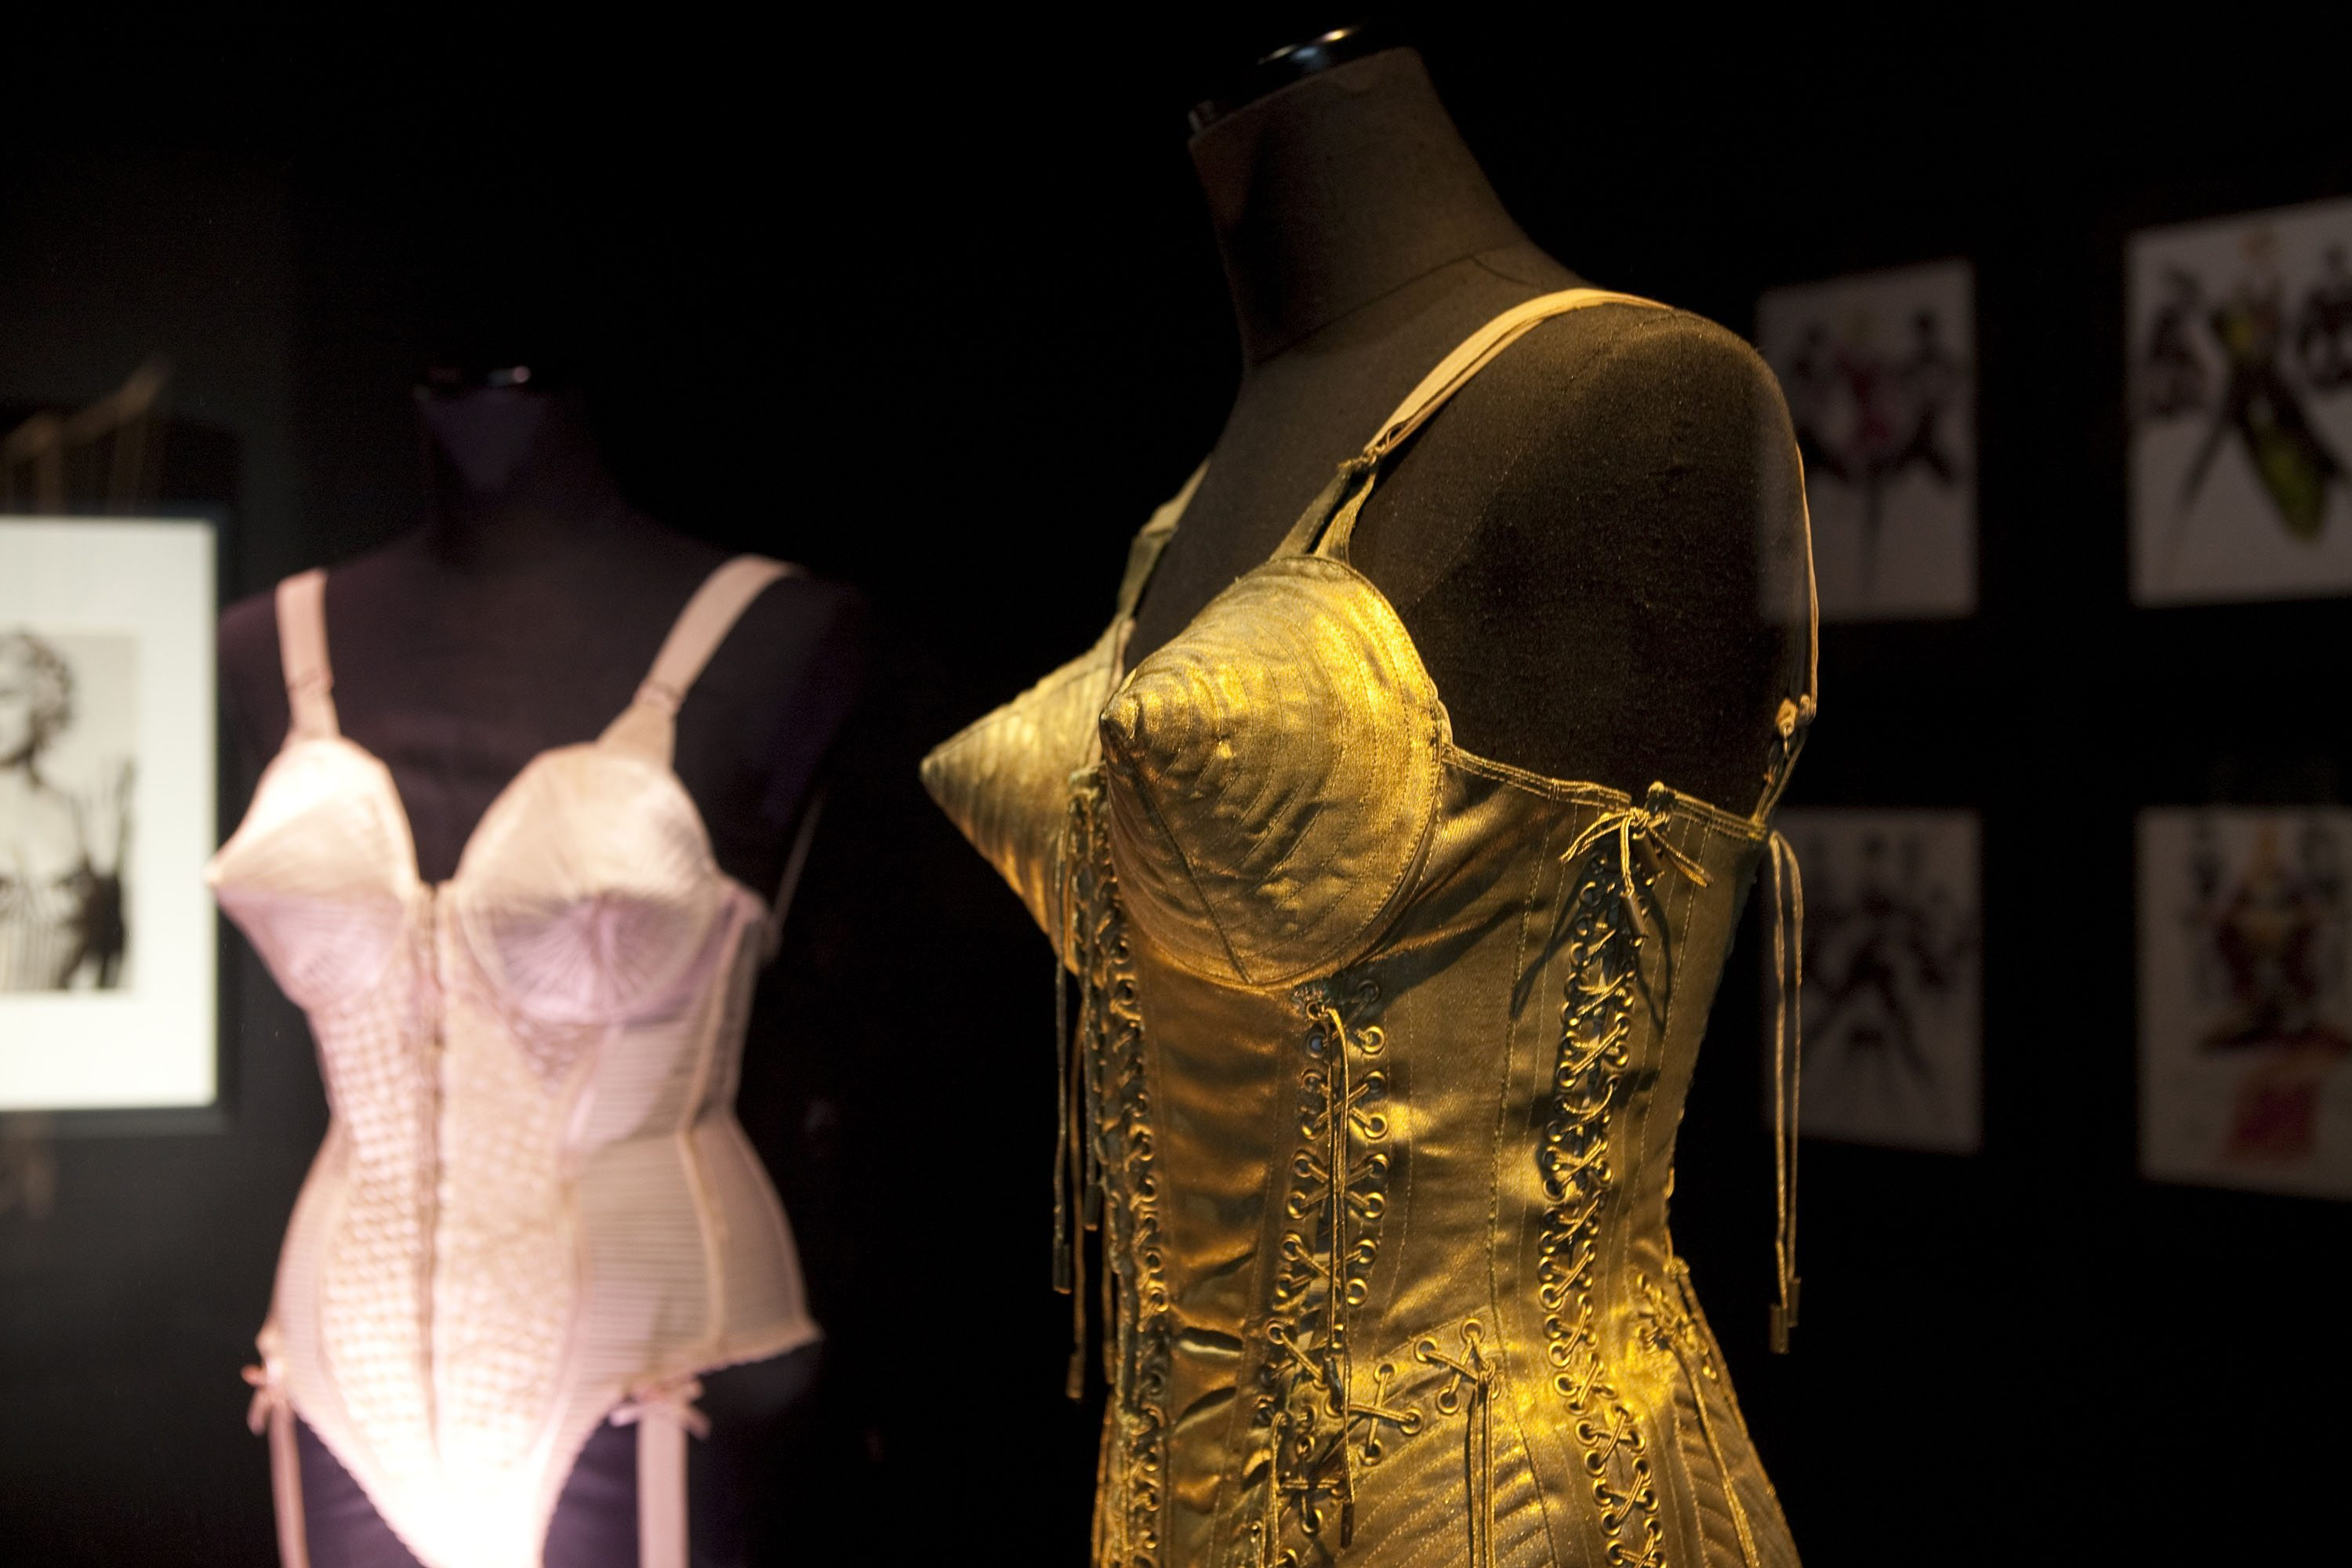 SHOP TALK: Roadtrip! Last chance to see Jean Paul Gaultier exhibit in Montreal